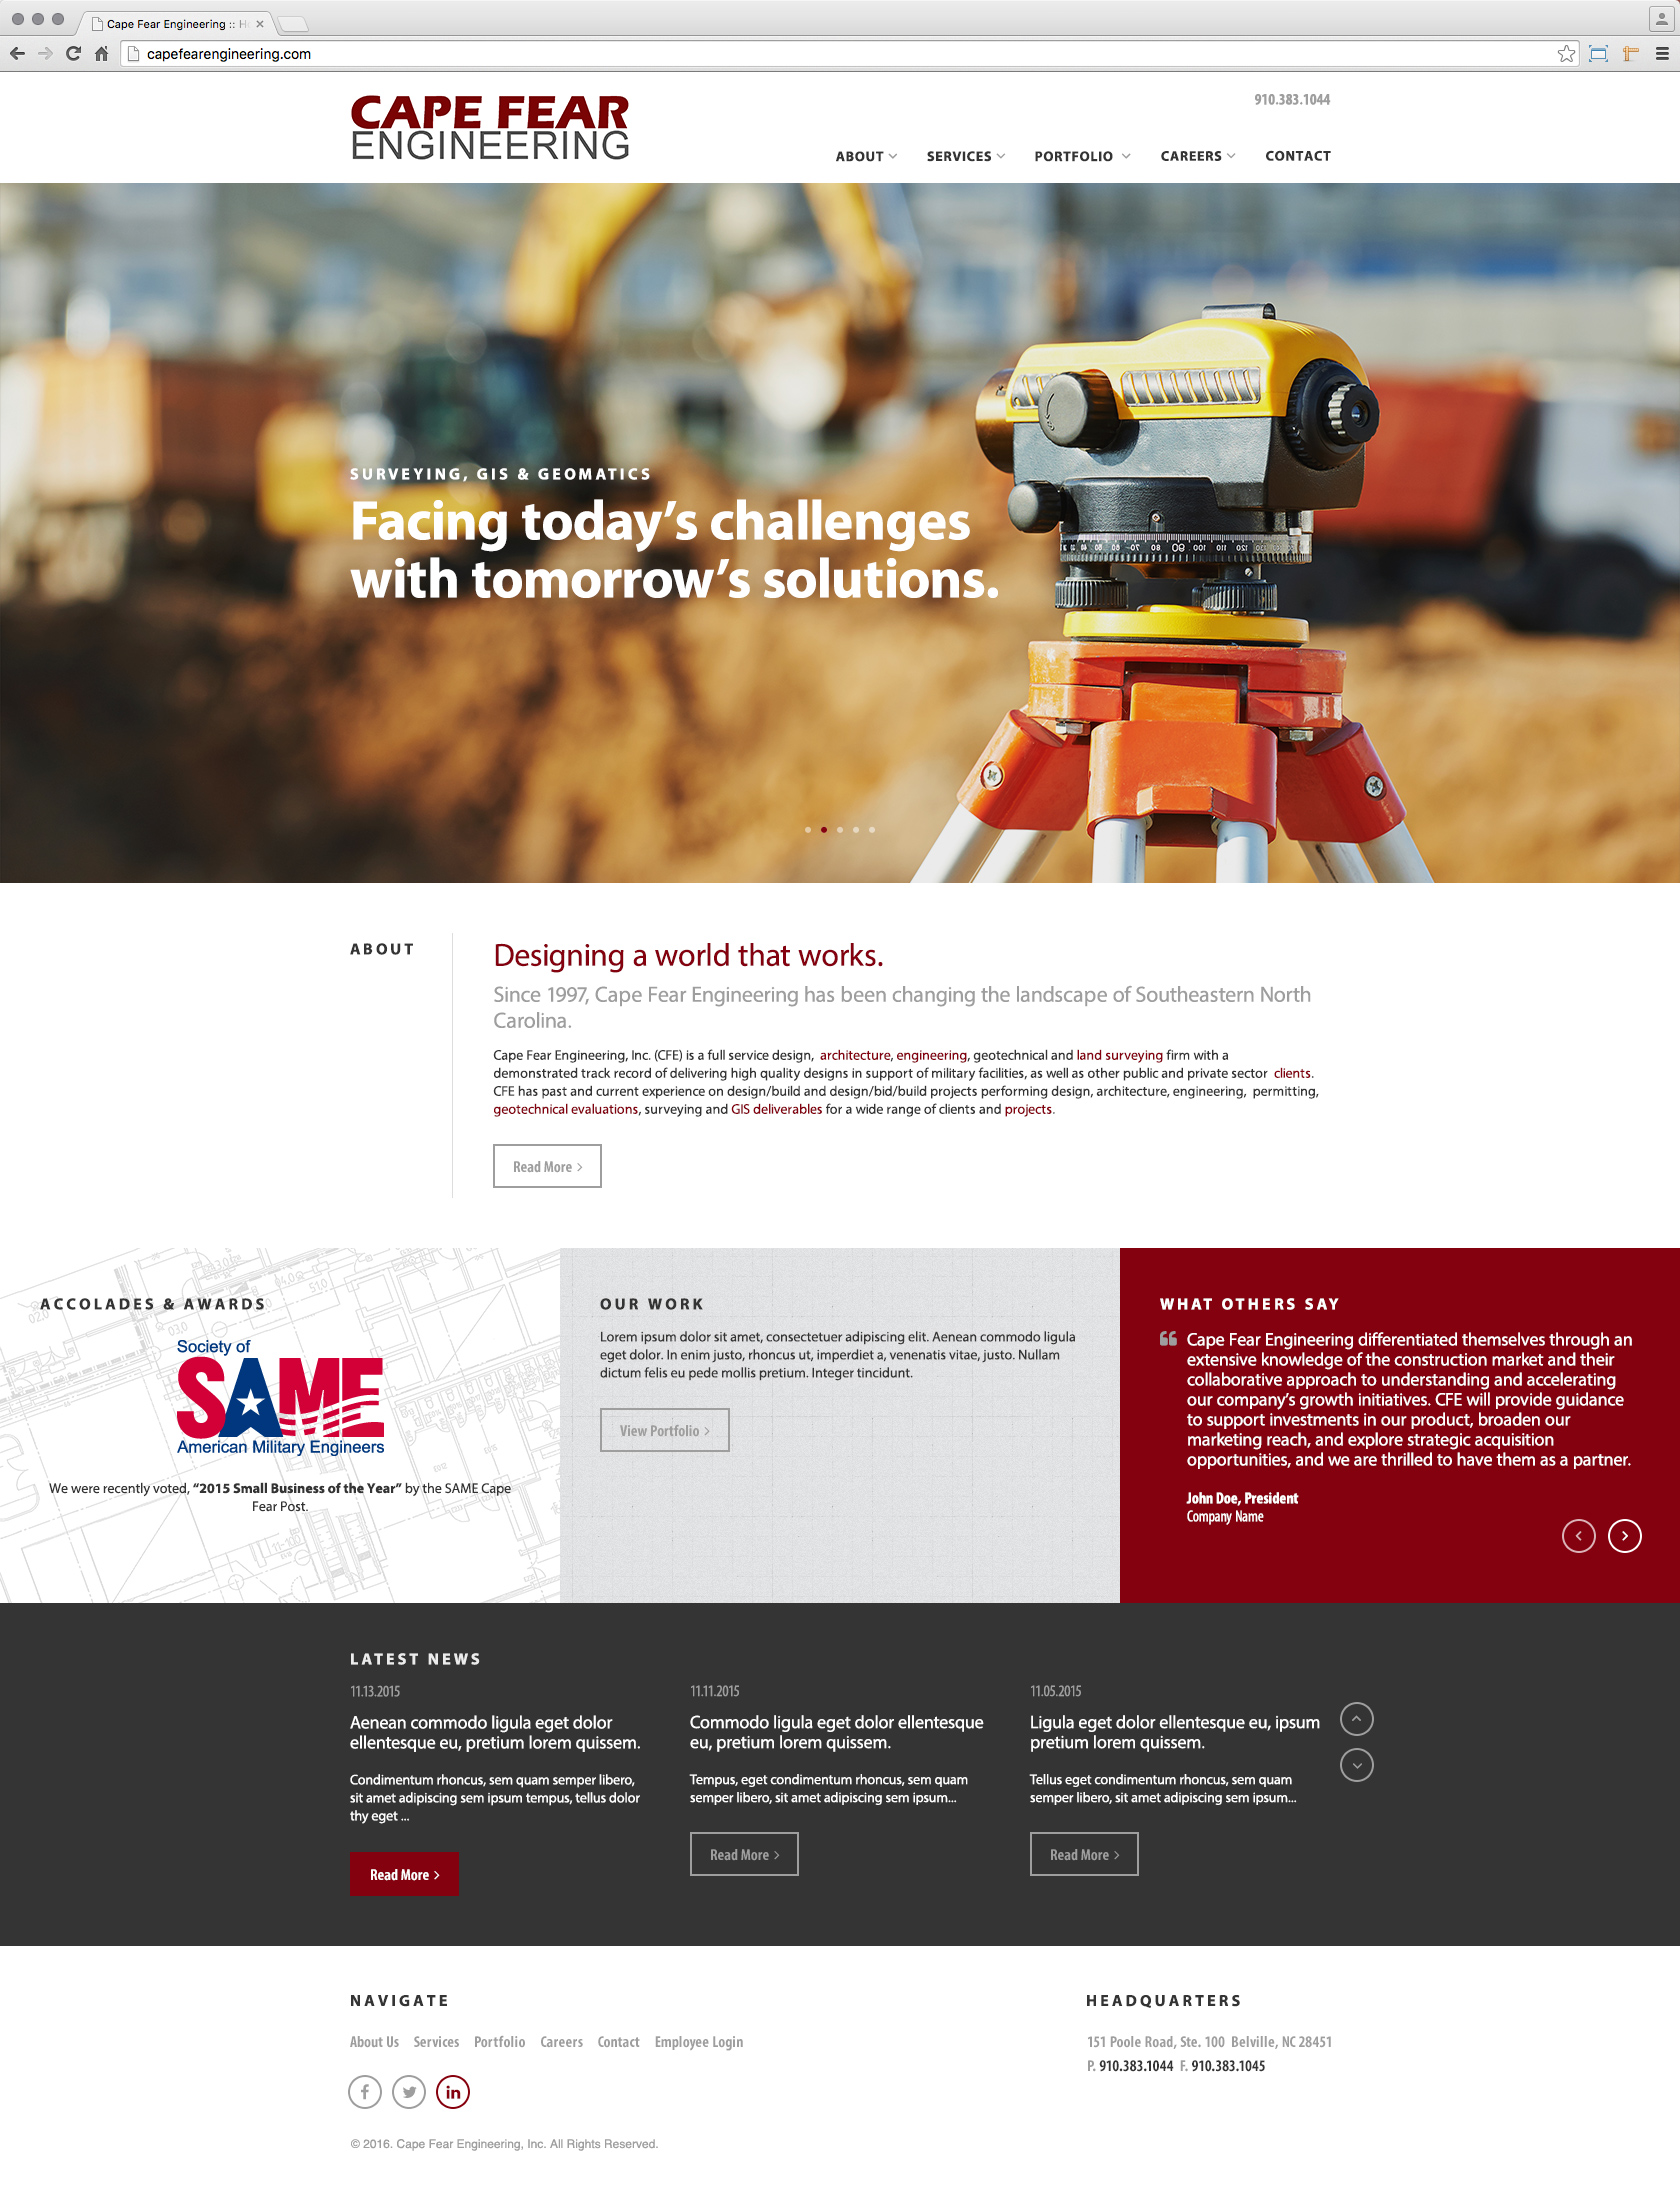 Cape Fear Engineering Civil Design Firm Home Page